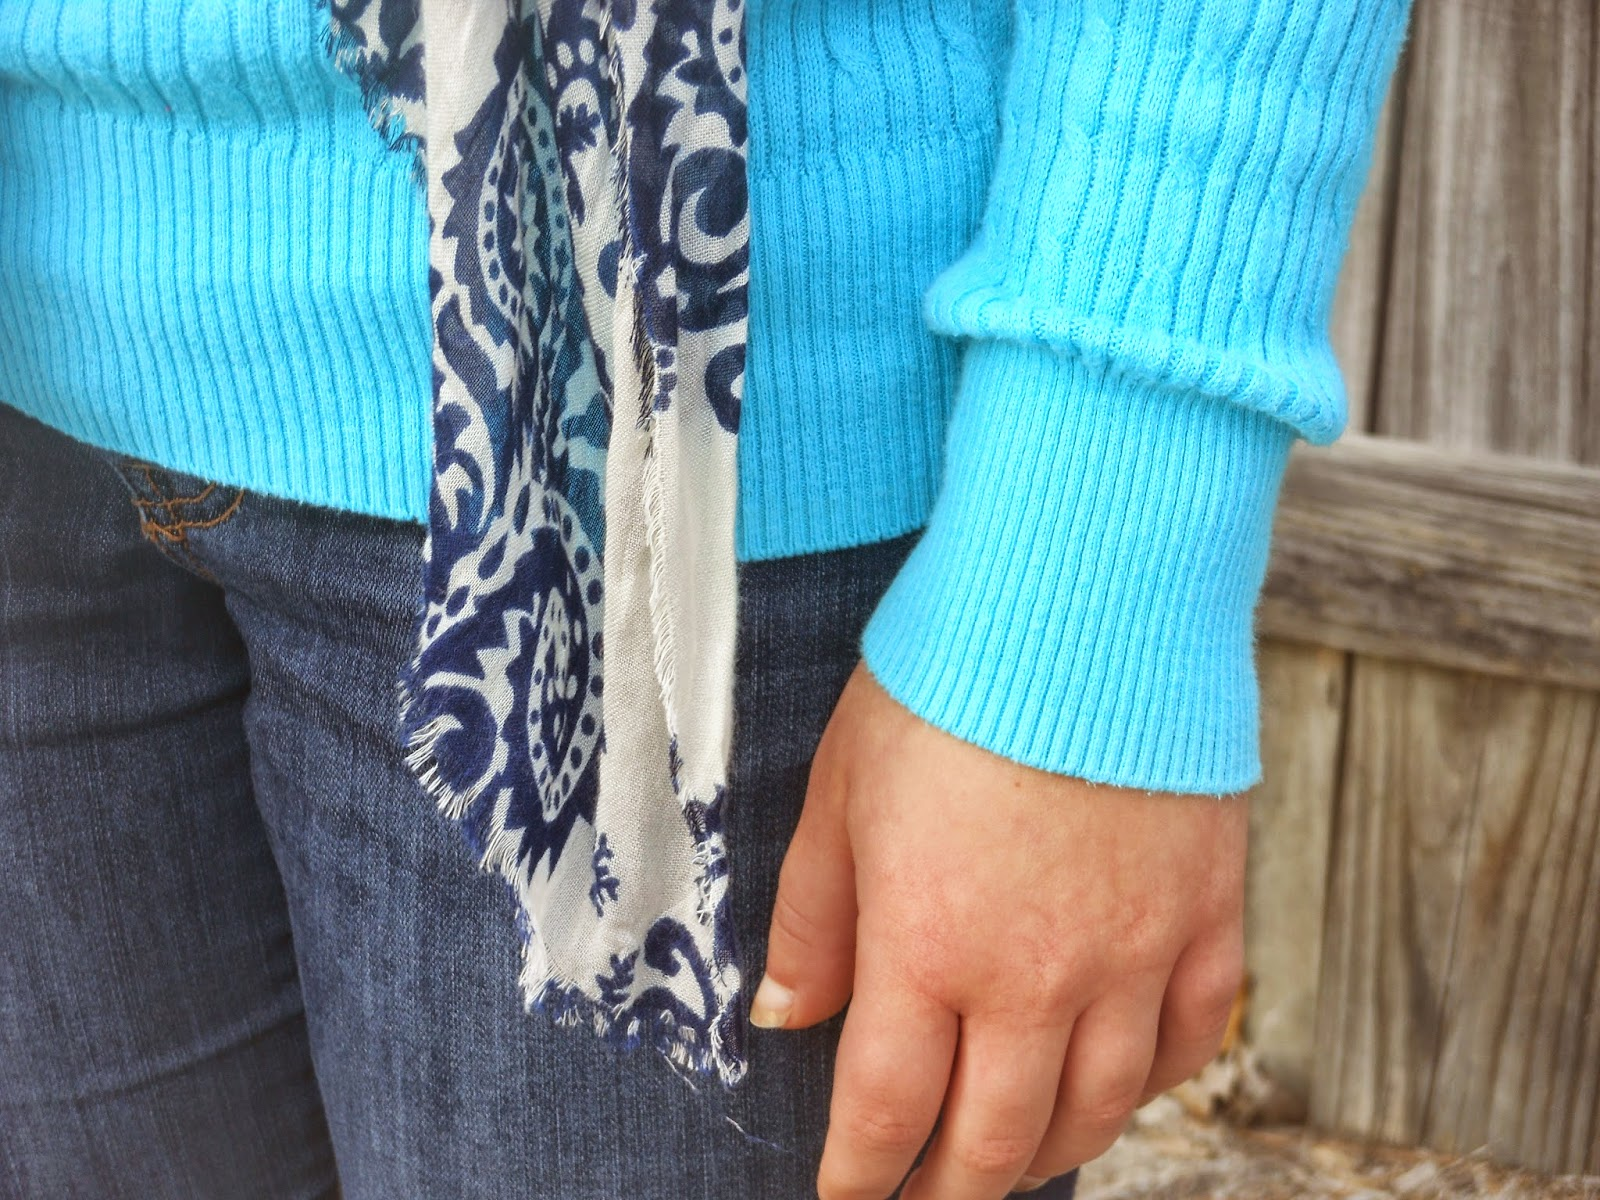 Turquoise and Peach. Turquoise sweater, jeans, navy and ivory scarf, peach boot socks, riding boots.